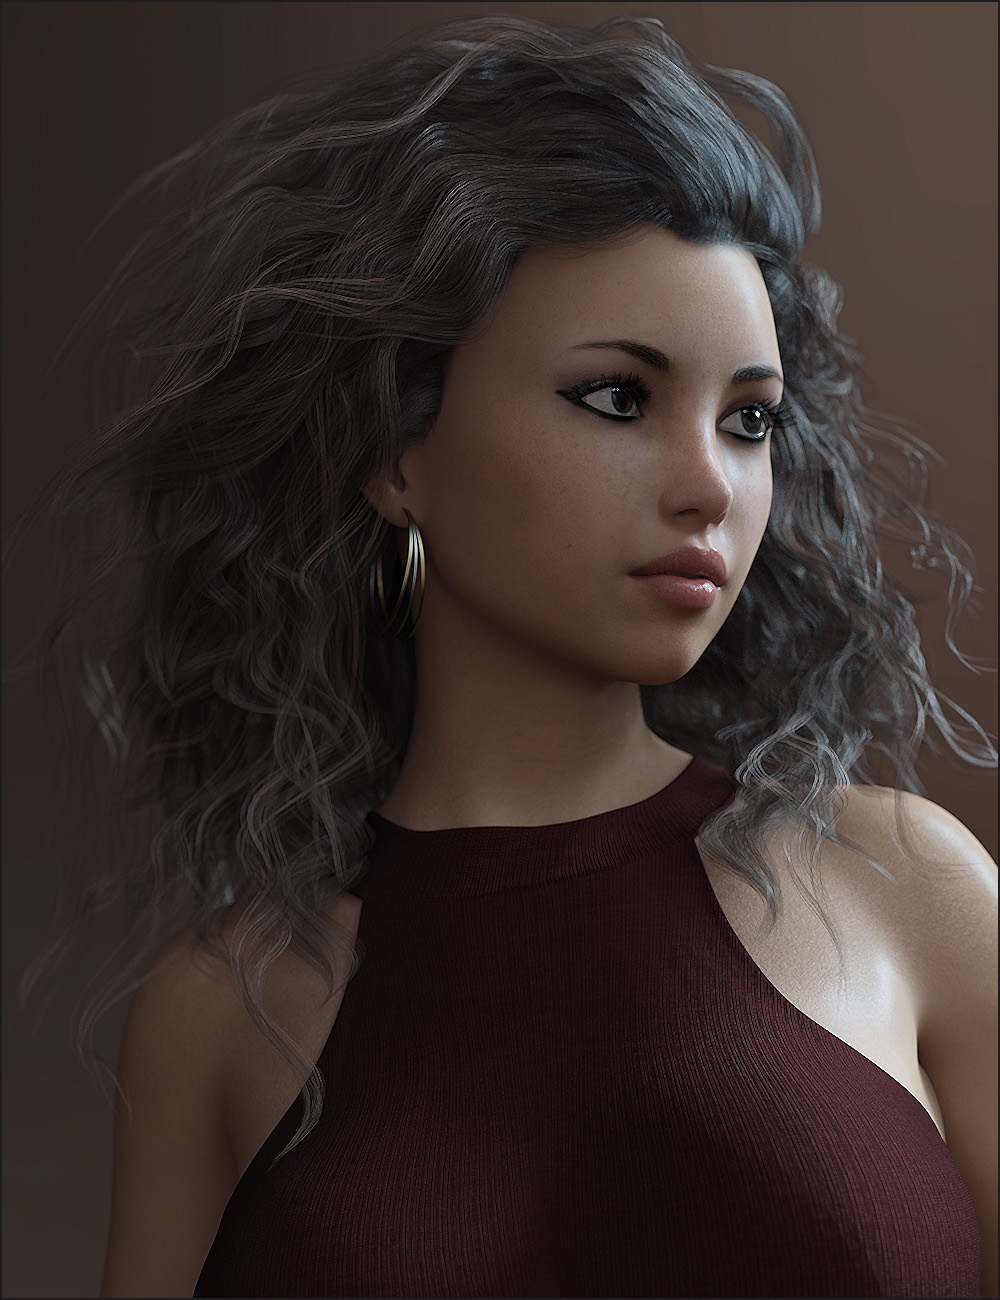 FWSA Charis for Genesis 8 by Sabby